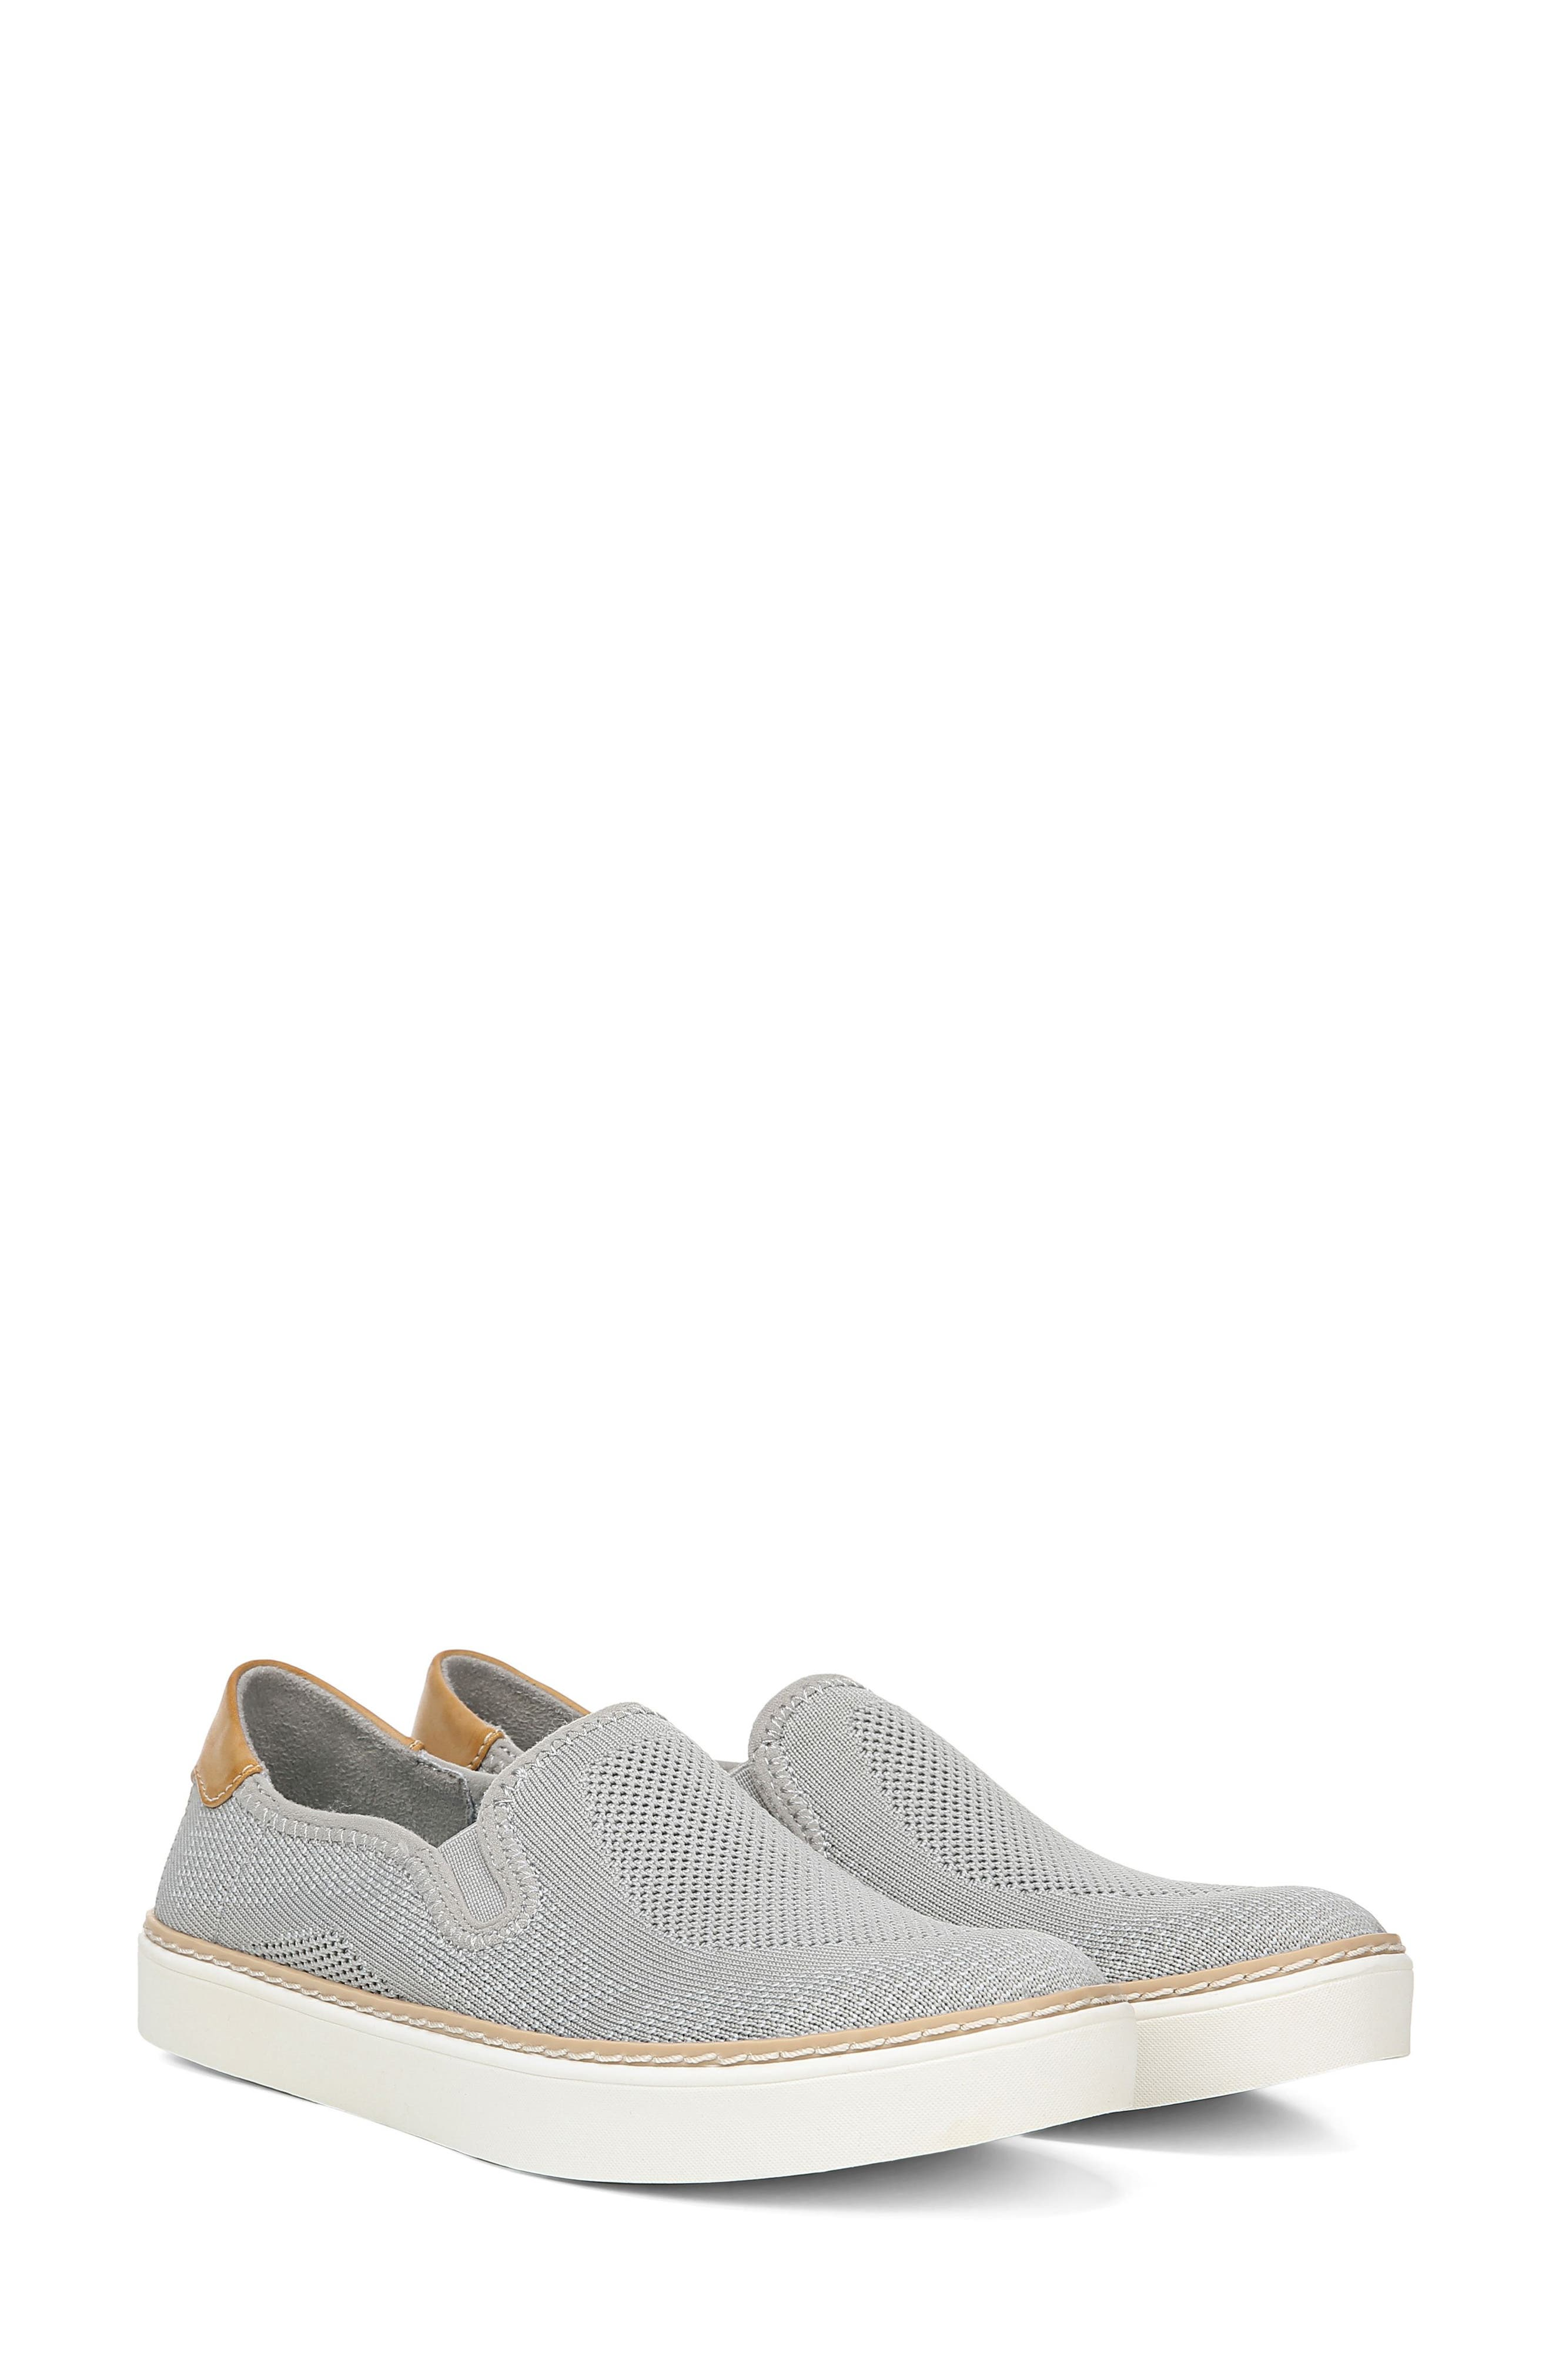 ,                             Madi Slip-On Sneaker,                             Alternate thumbnail 8, color,                             GREY KNIT FABRIC